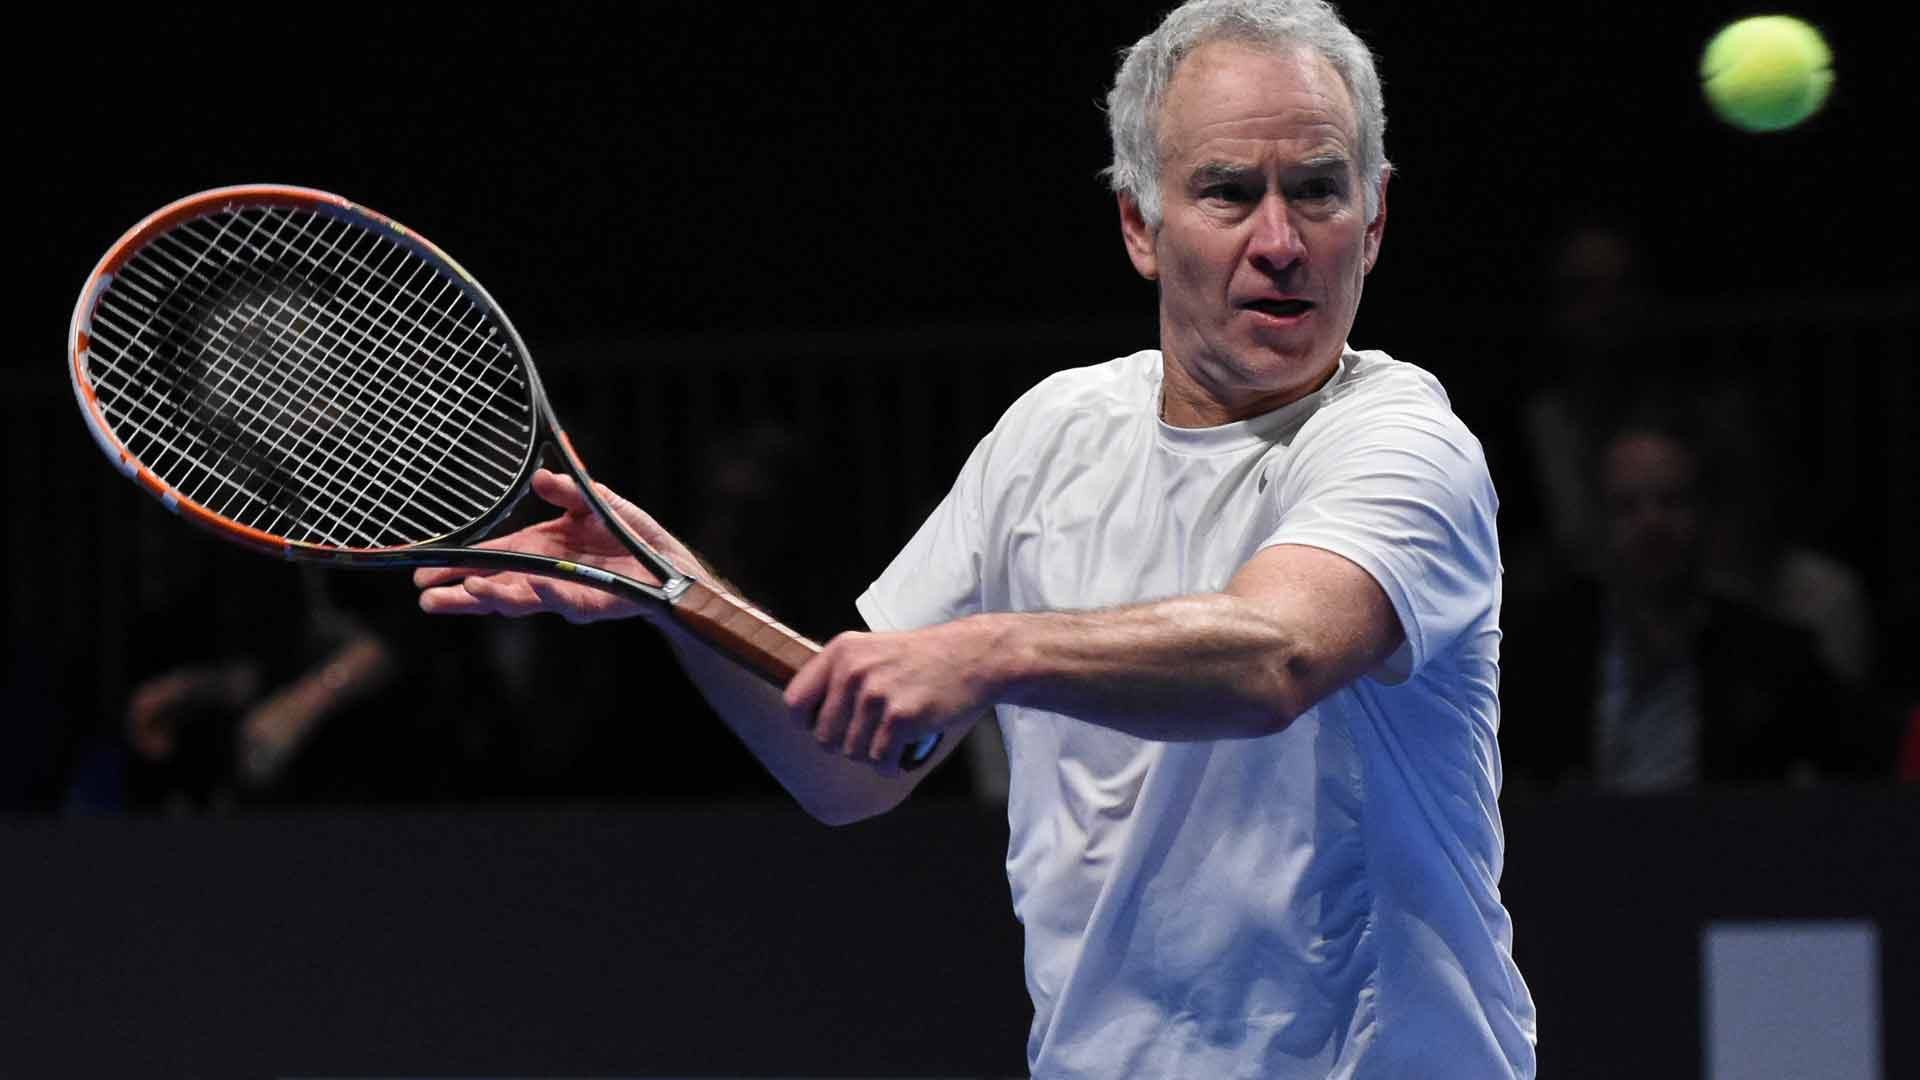 John McEnroe said he played out of his mind during the Kings of Tennis ATP Champions Tour event in Stockholm.